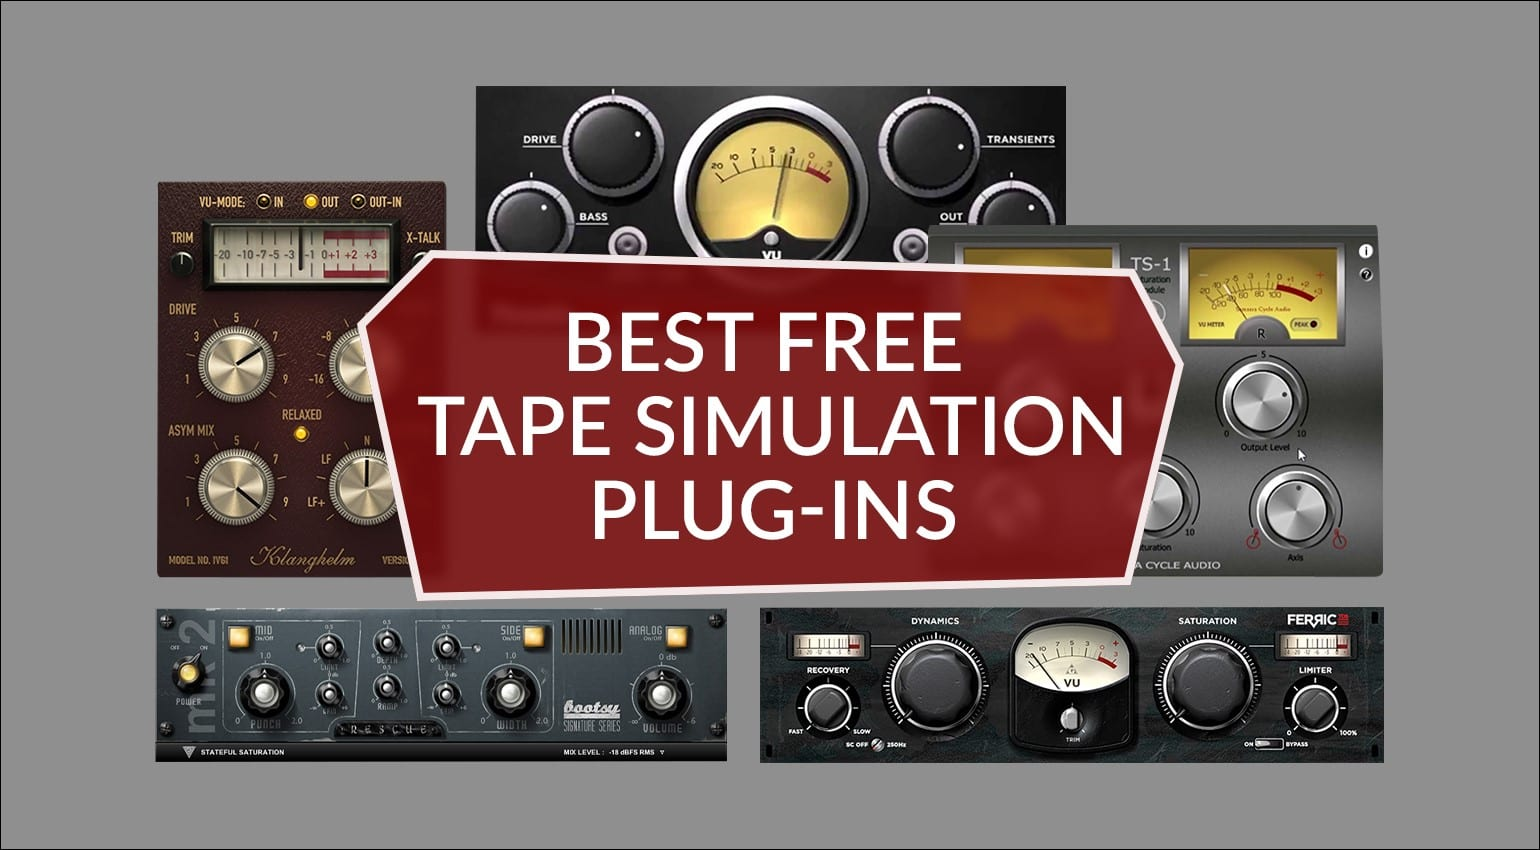 Best Free Tape Simulation Plug-ins: Our Top 9 freeware saturation effects